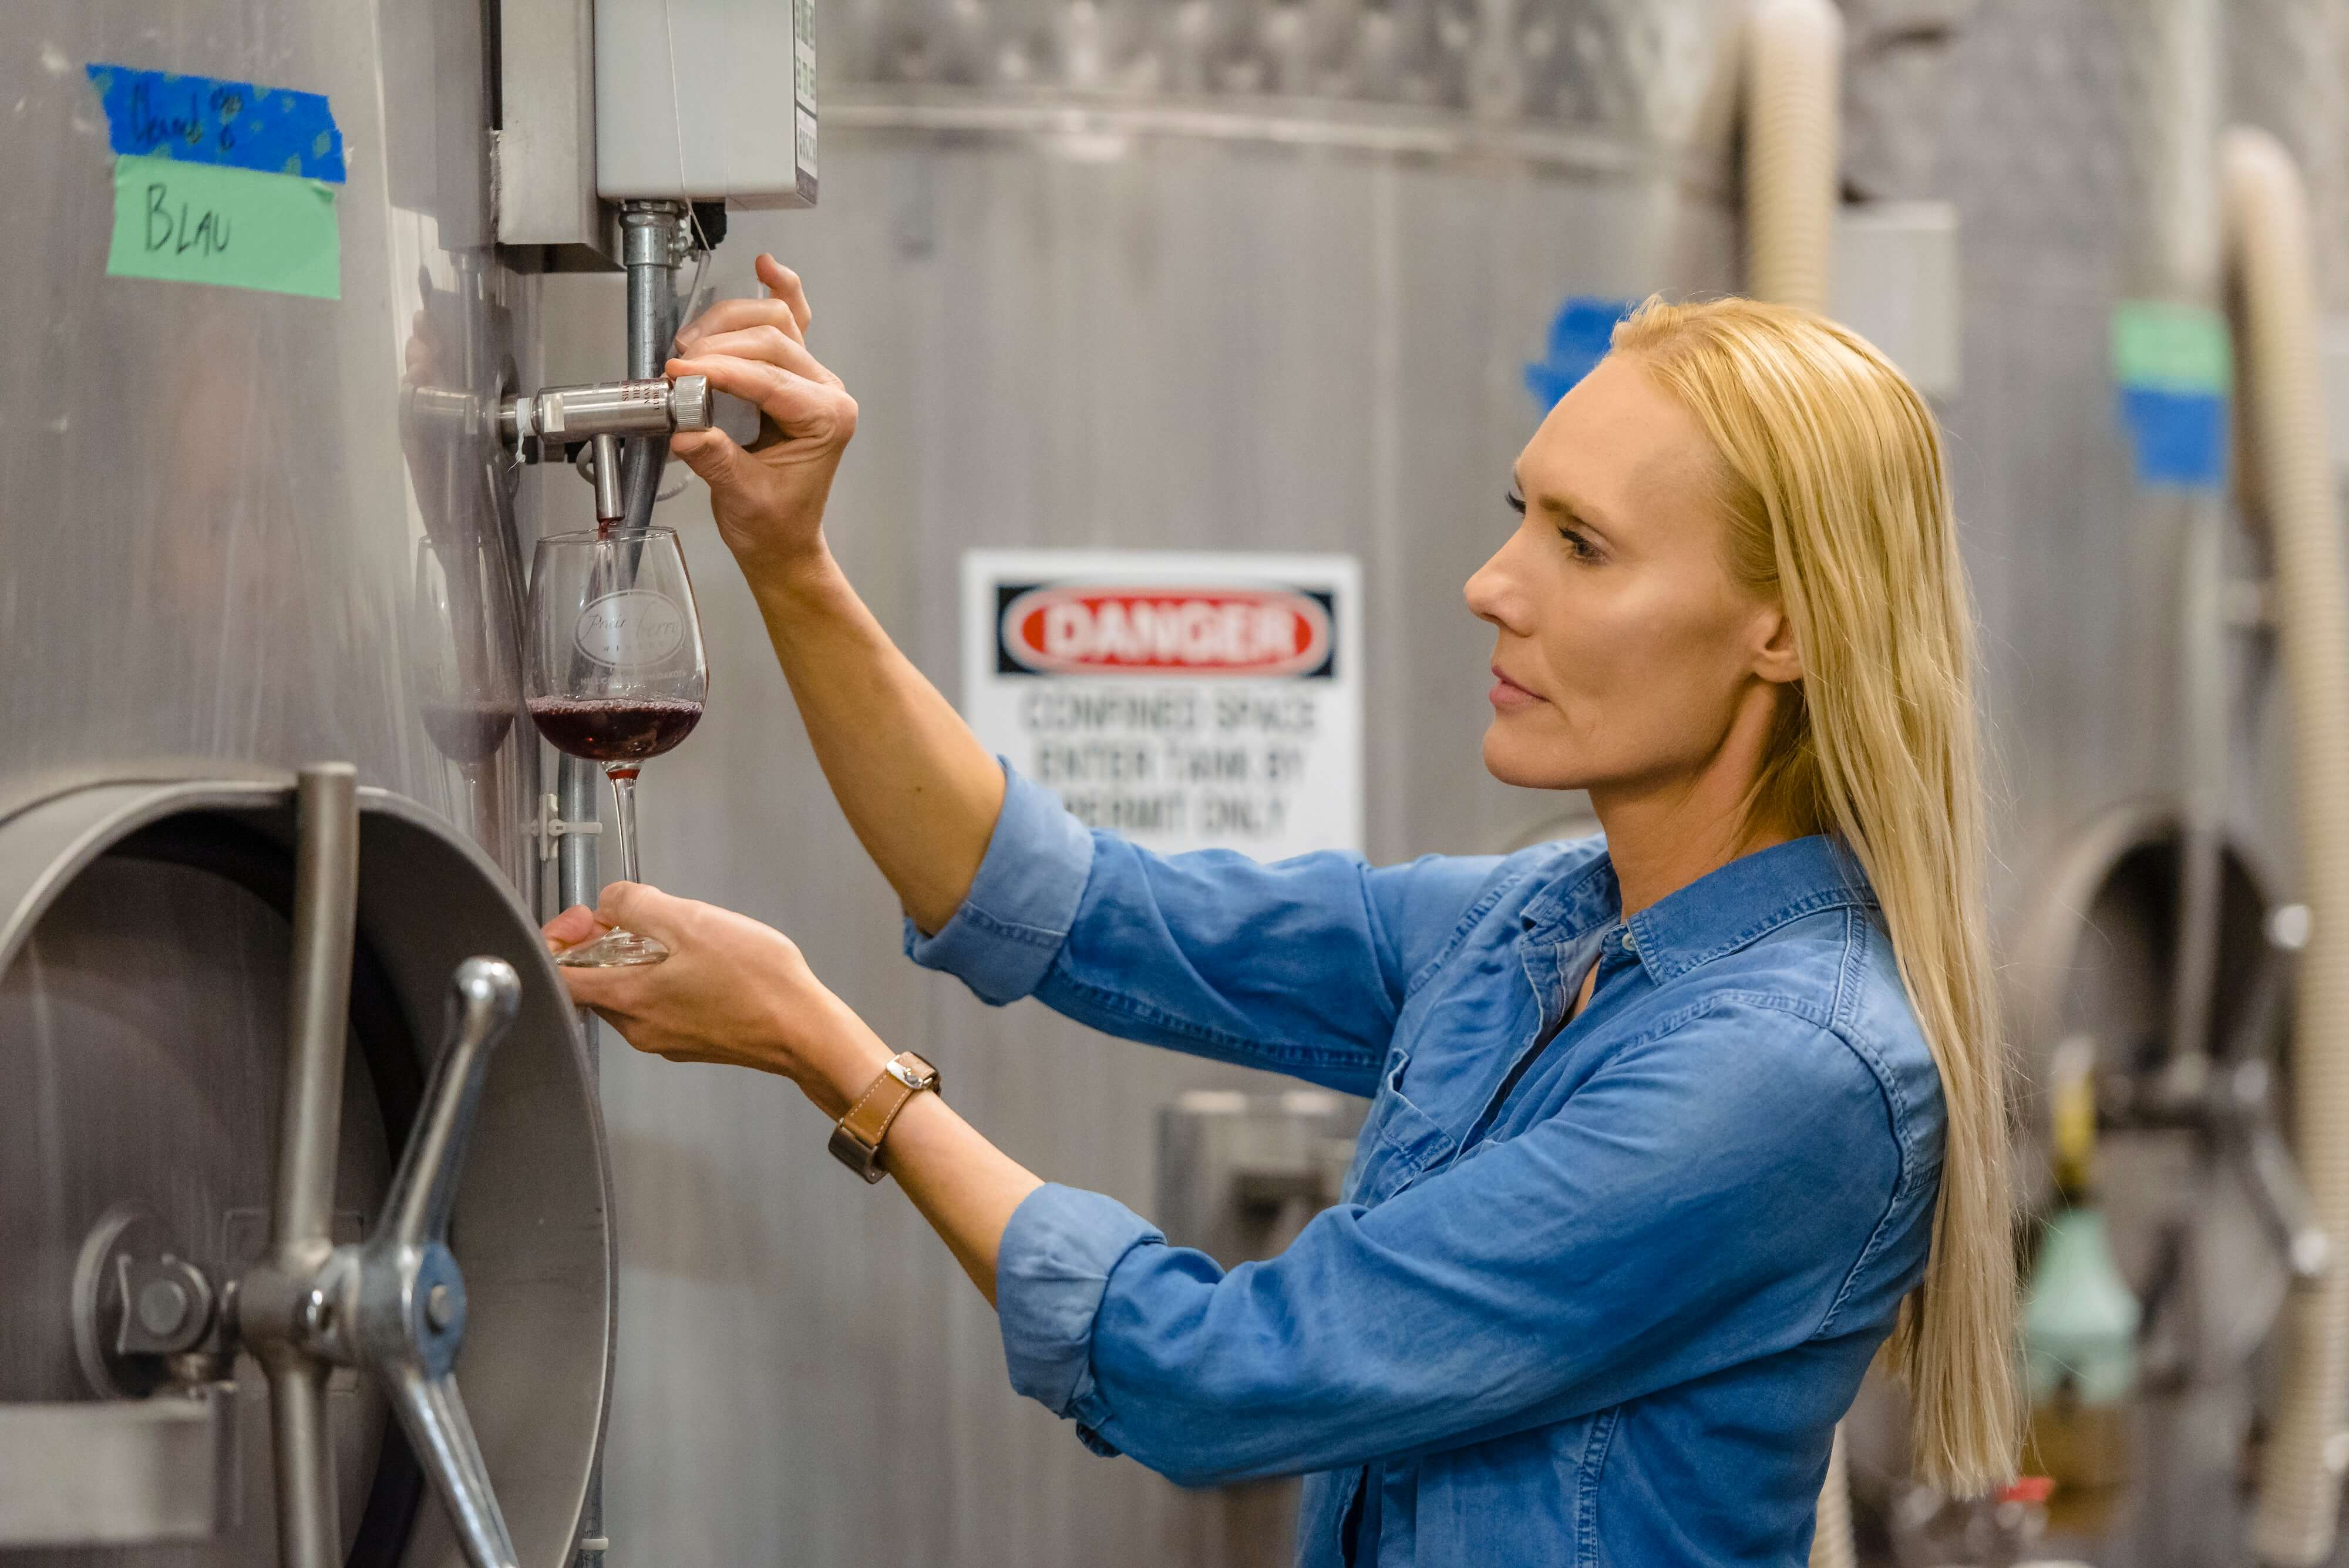 Fifth-generation winemaker Sandi Vojta brings her family's Old World influences and New World pioneer spirit to Prairie Berry Winery